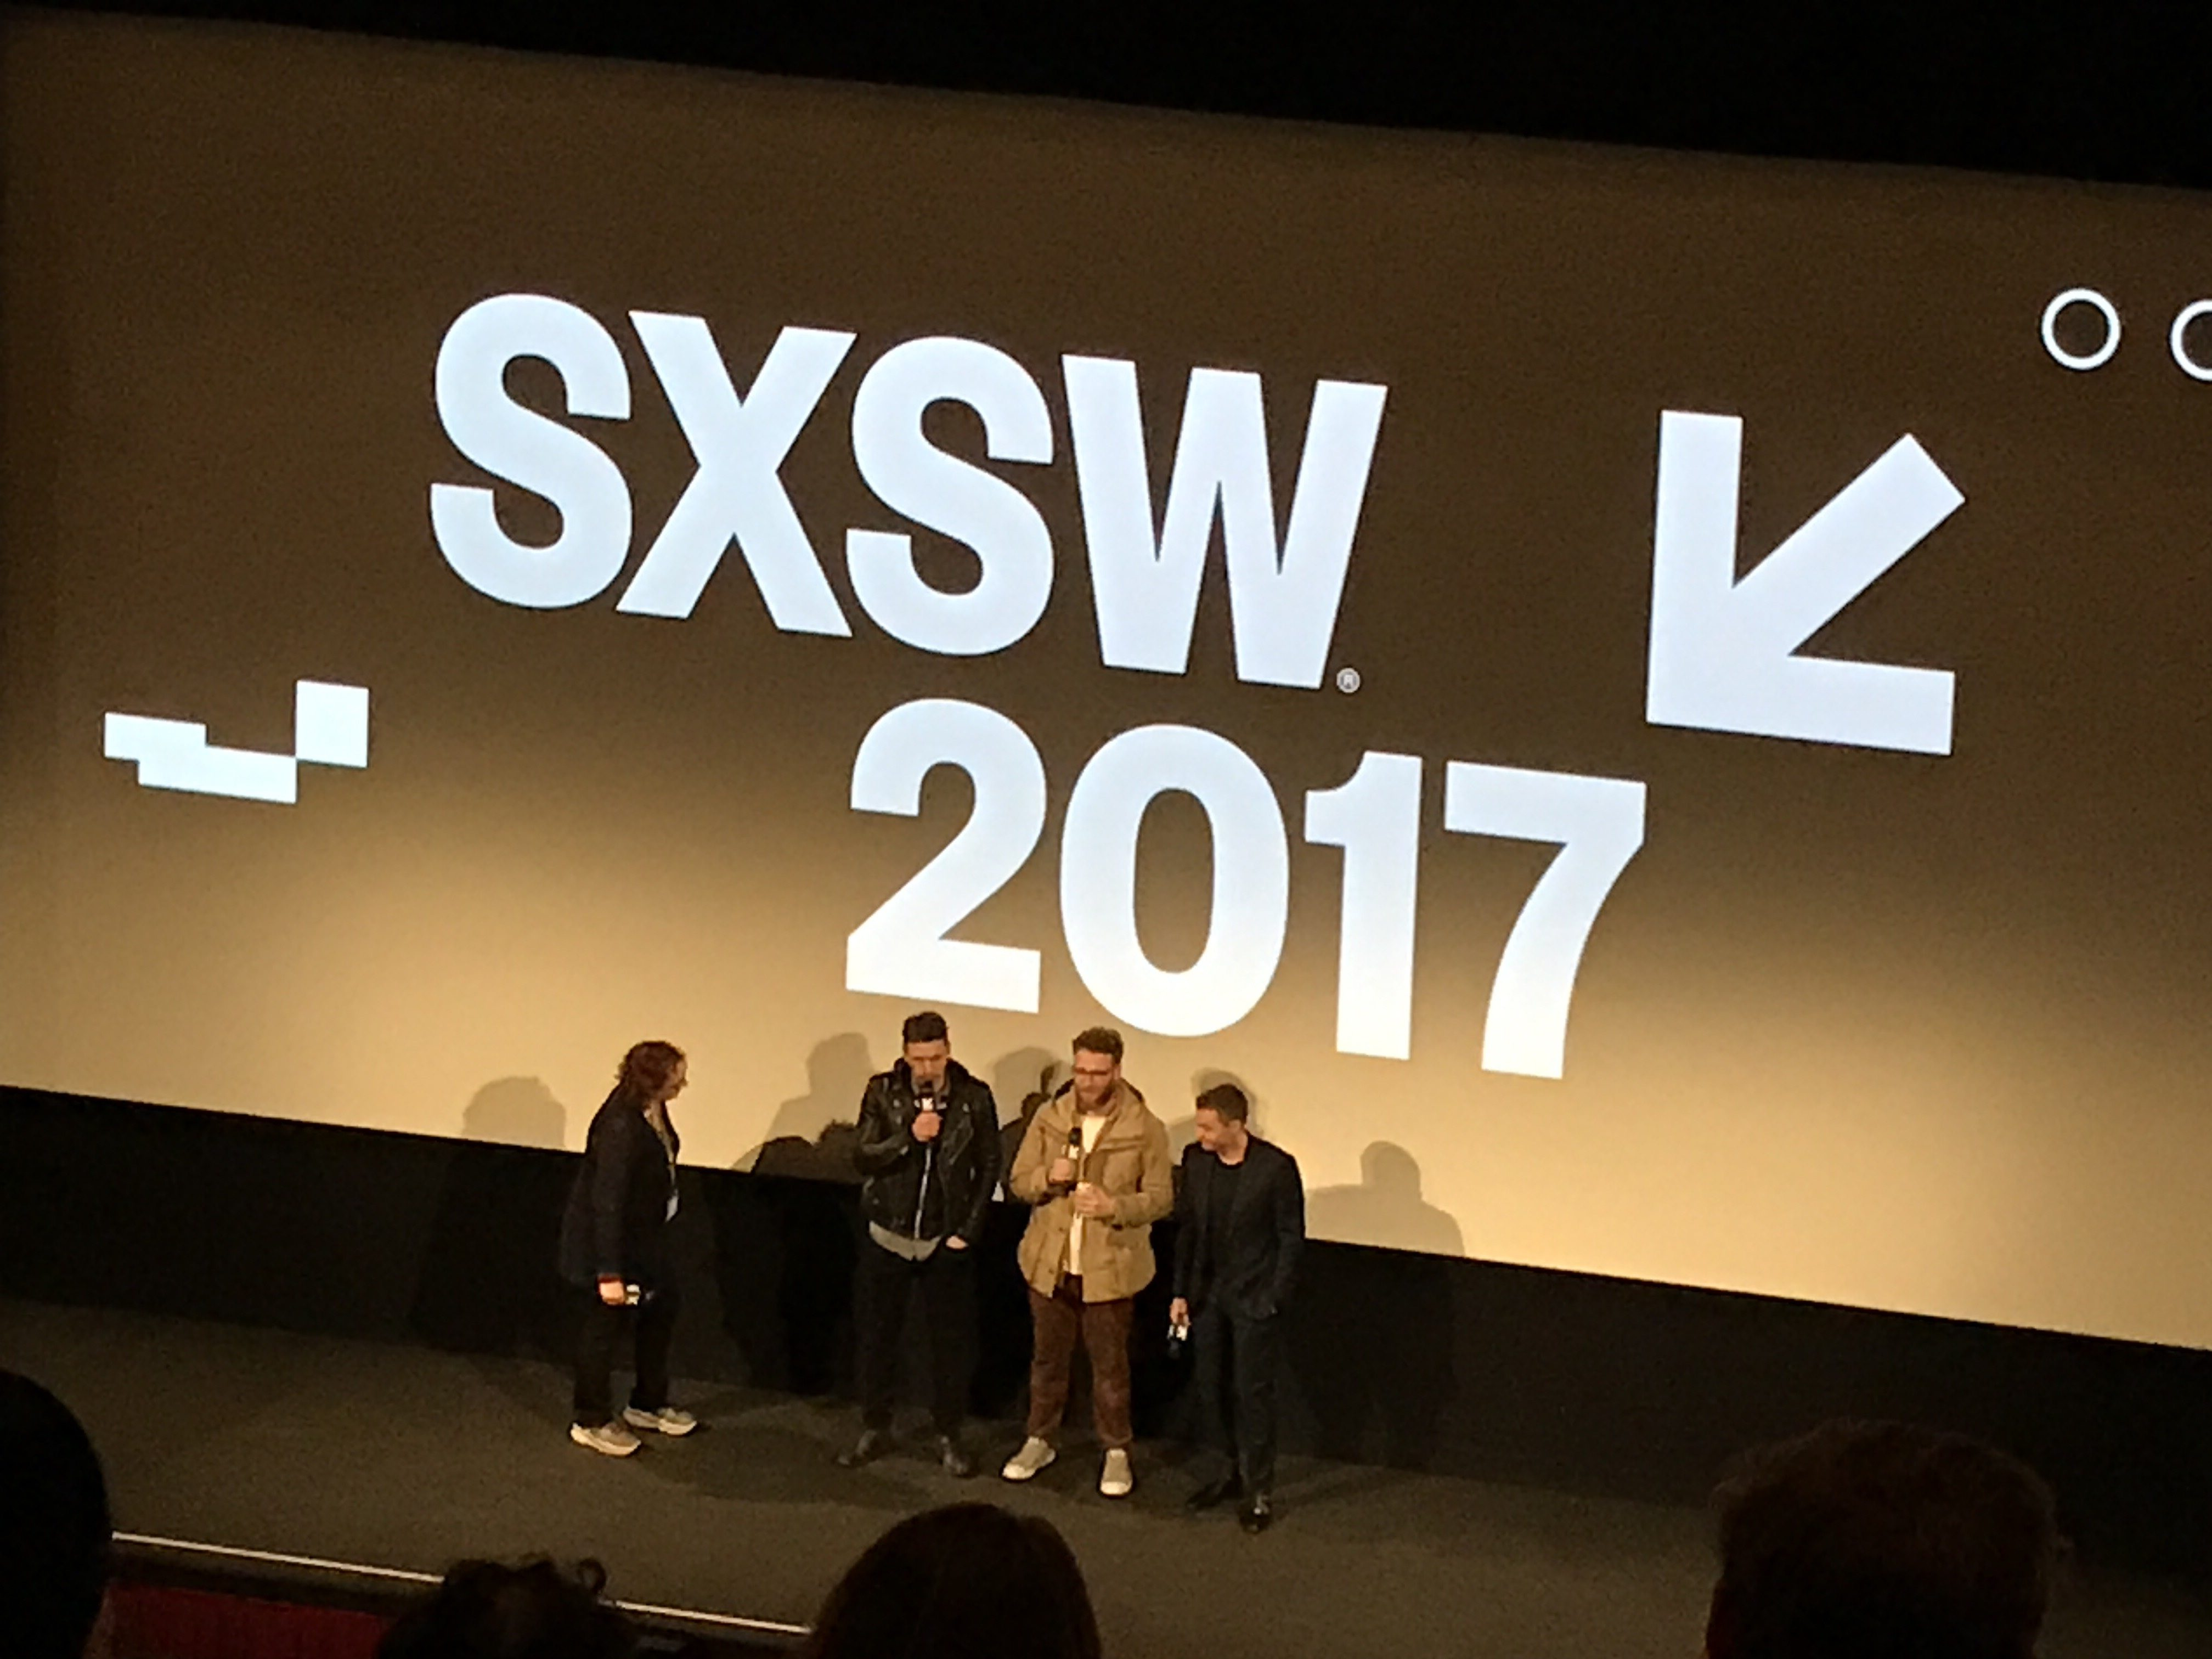 (Featured from left to right: Host, James Franco, Seth Rogen, Dave Franco) at SXSW 2017 'The Disaster Artist' movie premiere.